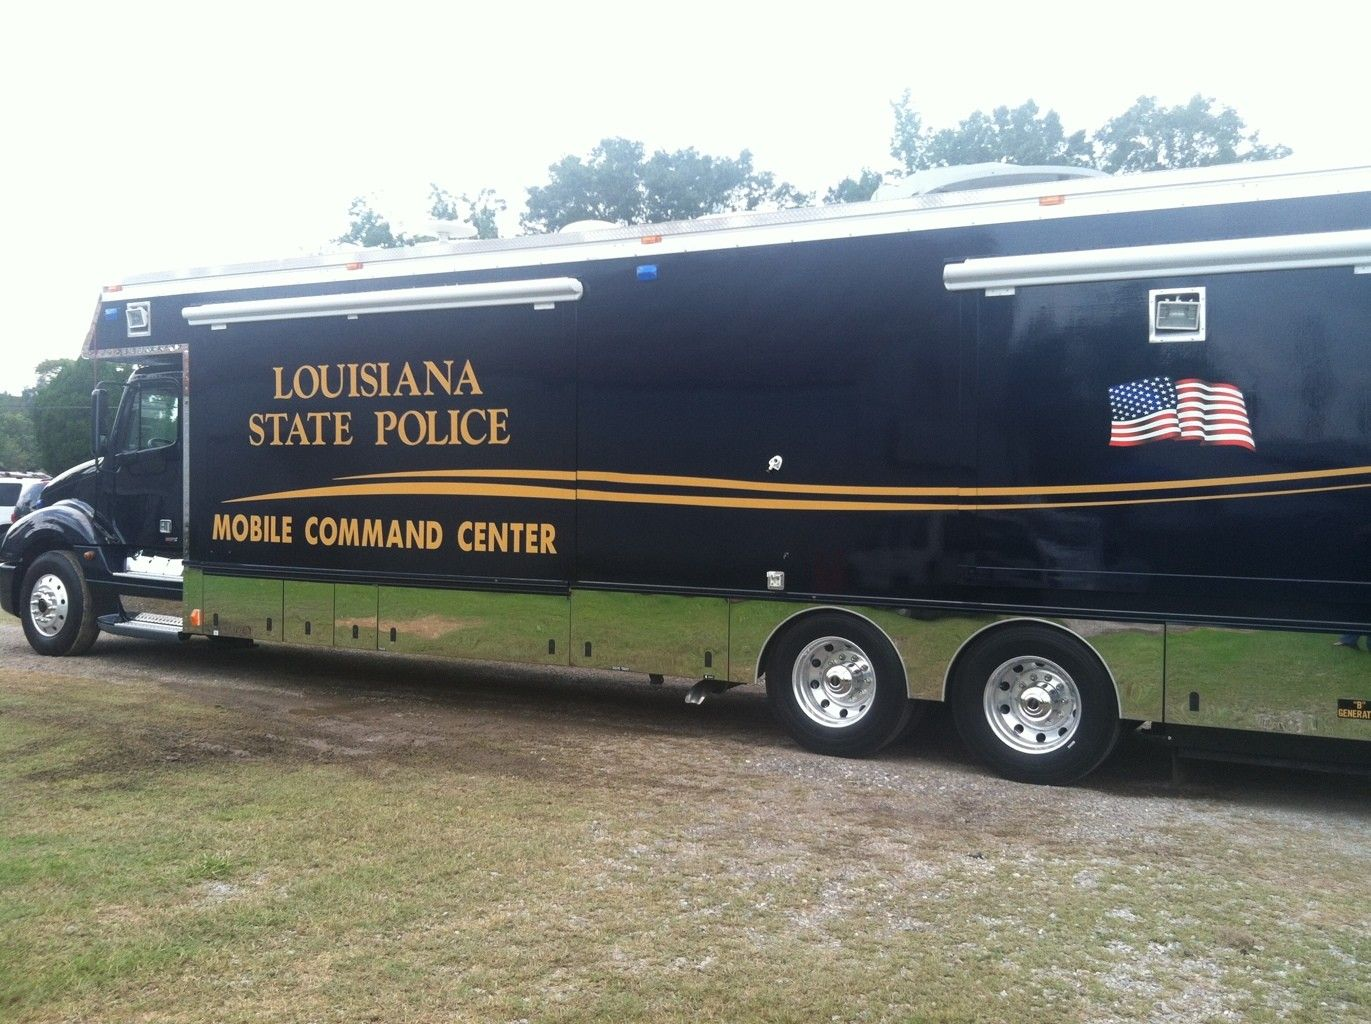 Louisiana State Police State Police Mobile Command Center Police Cars